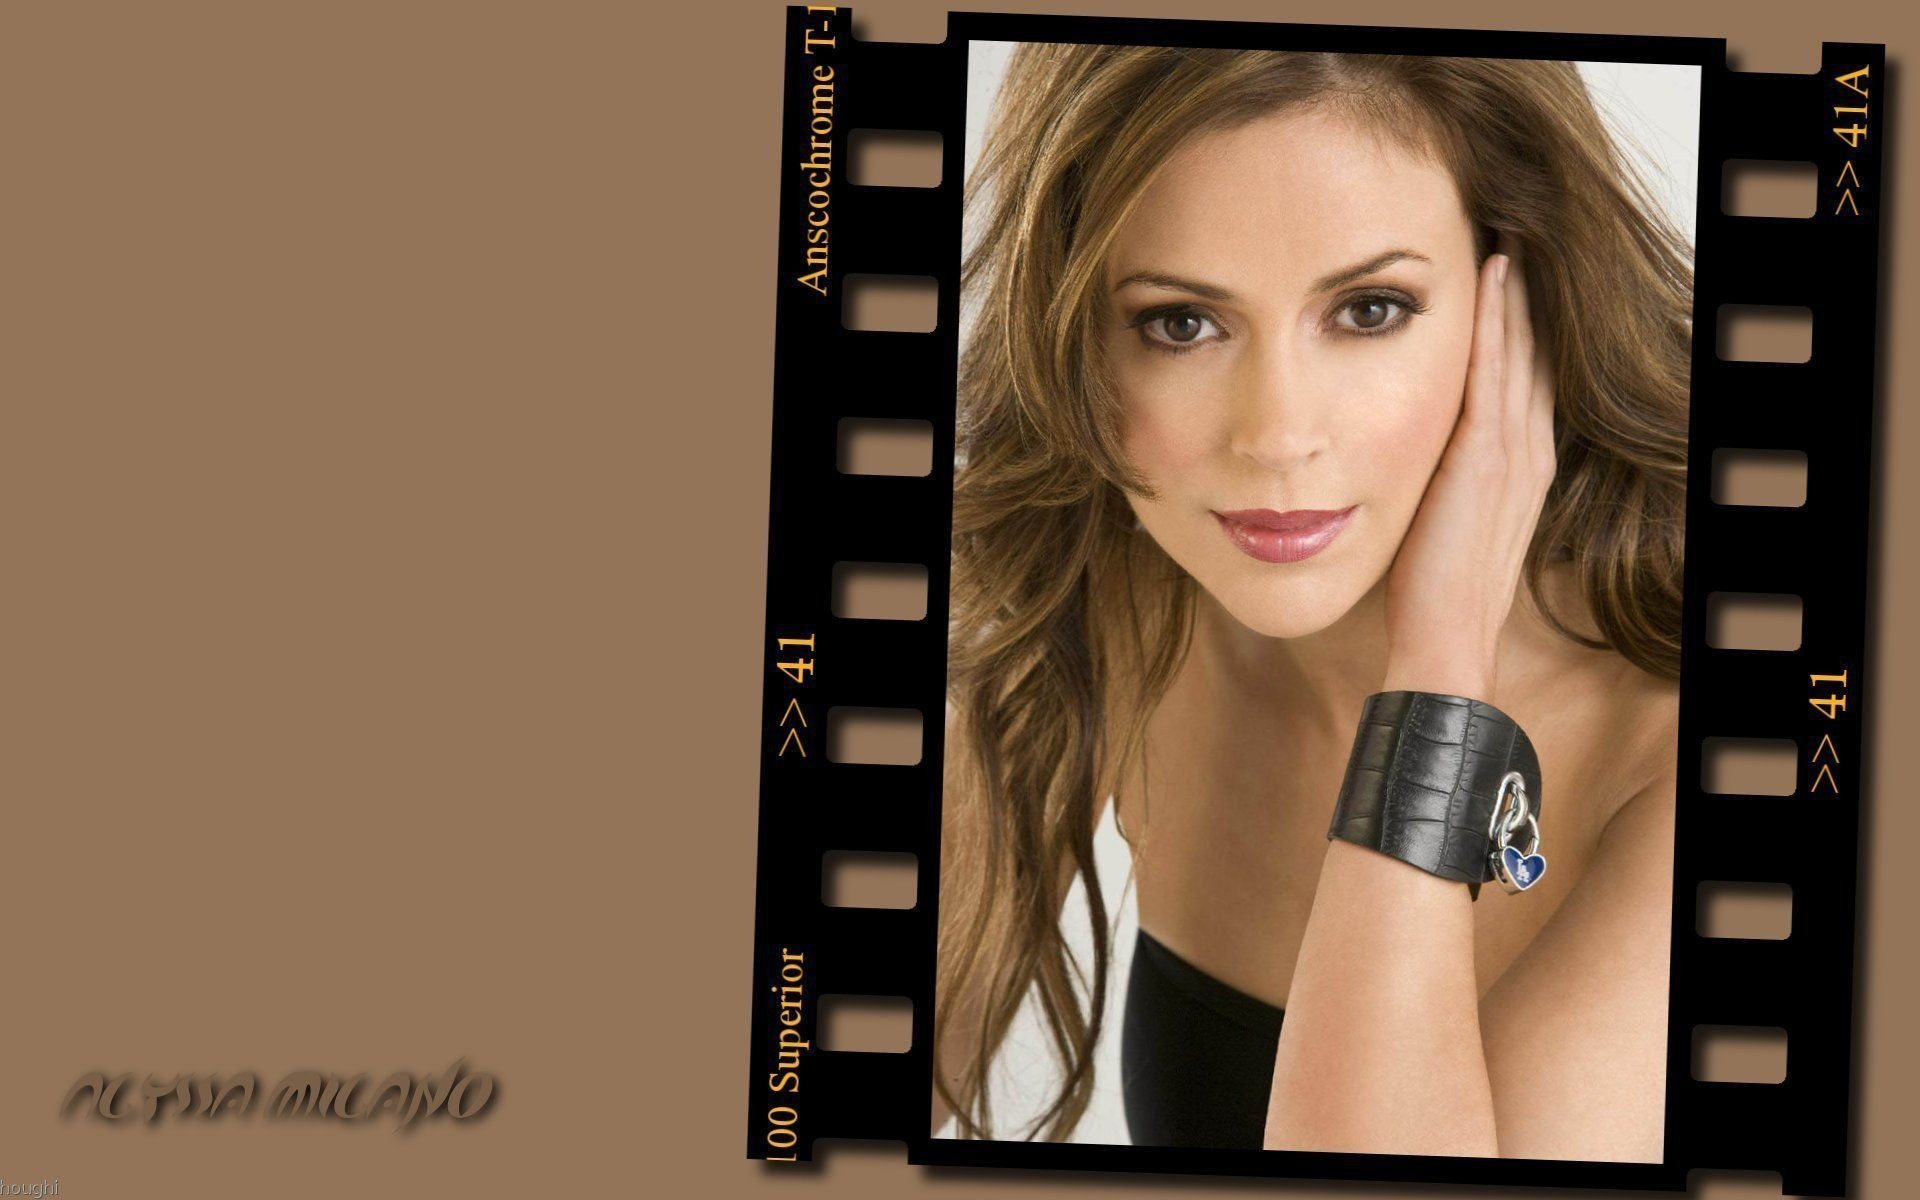 Alyssa Milano #045 - 1920x1200 Wallpapers Pictures Photos Images